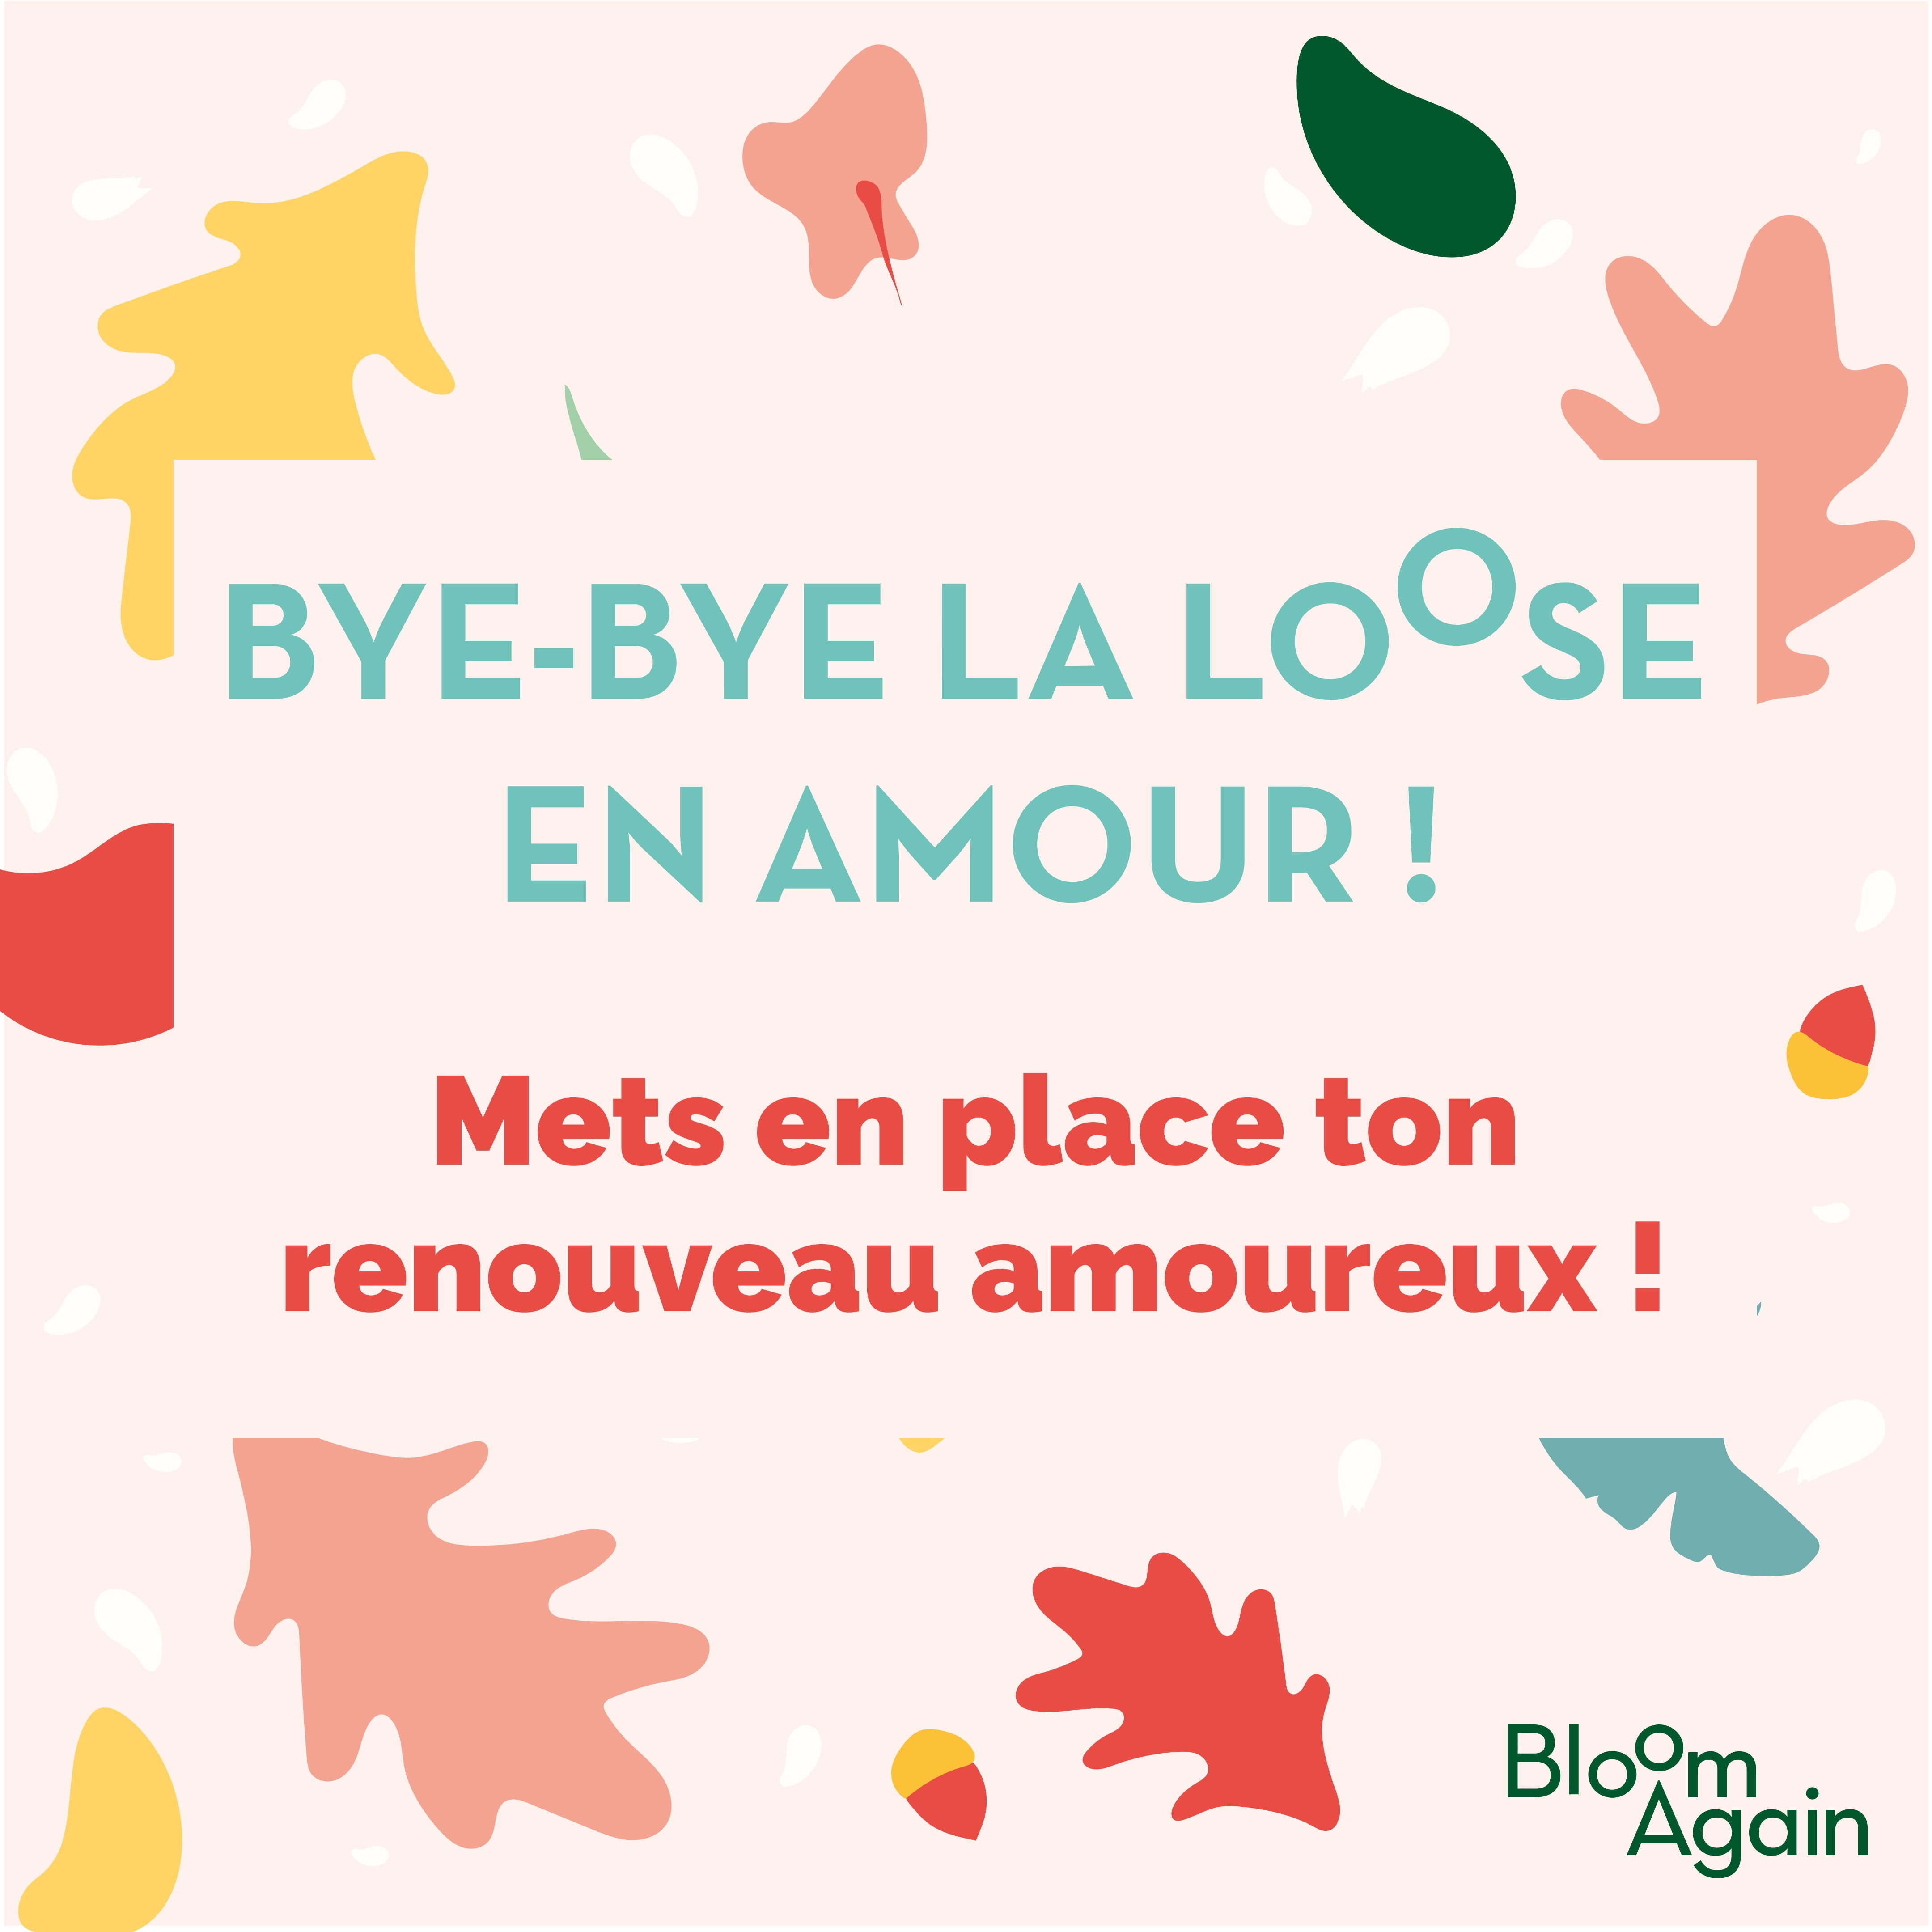 Bye Bye la loose en amour ! - version ebook - Bloom Again